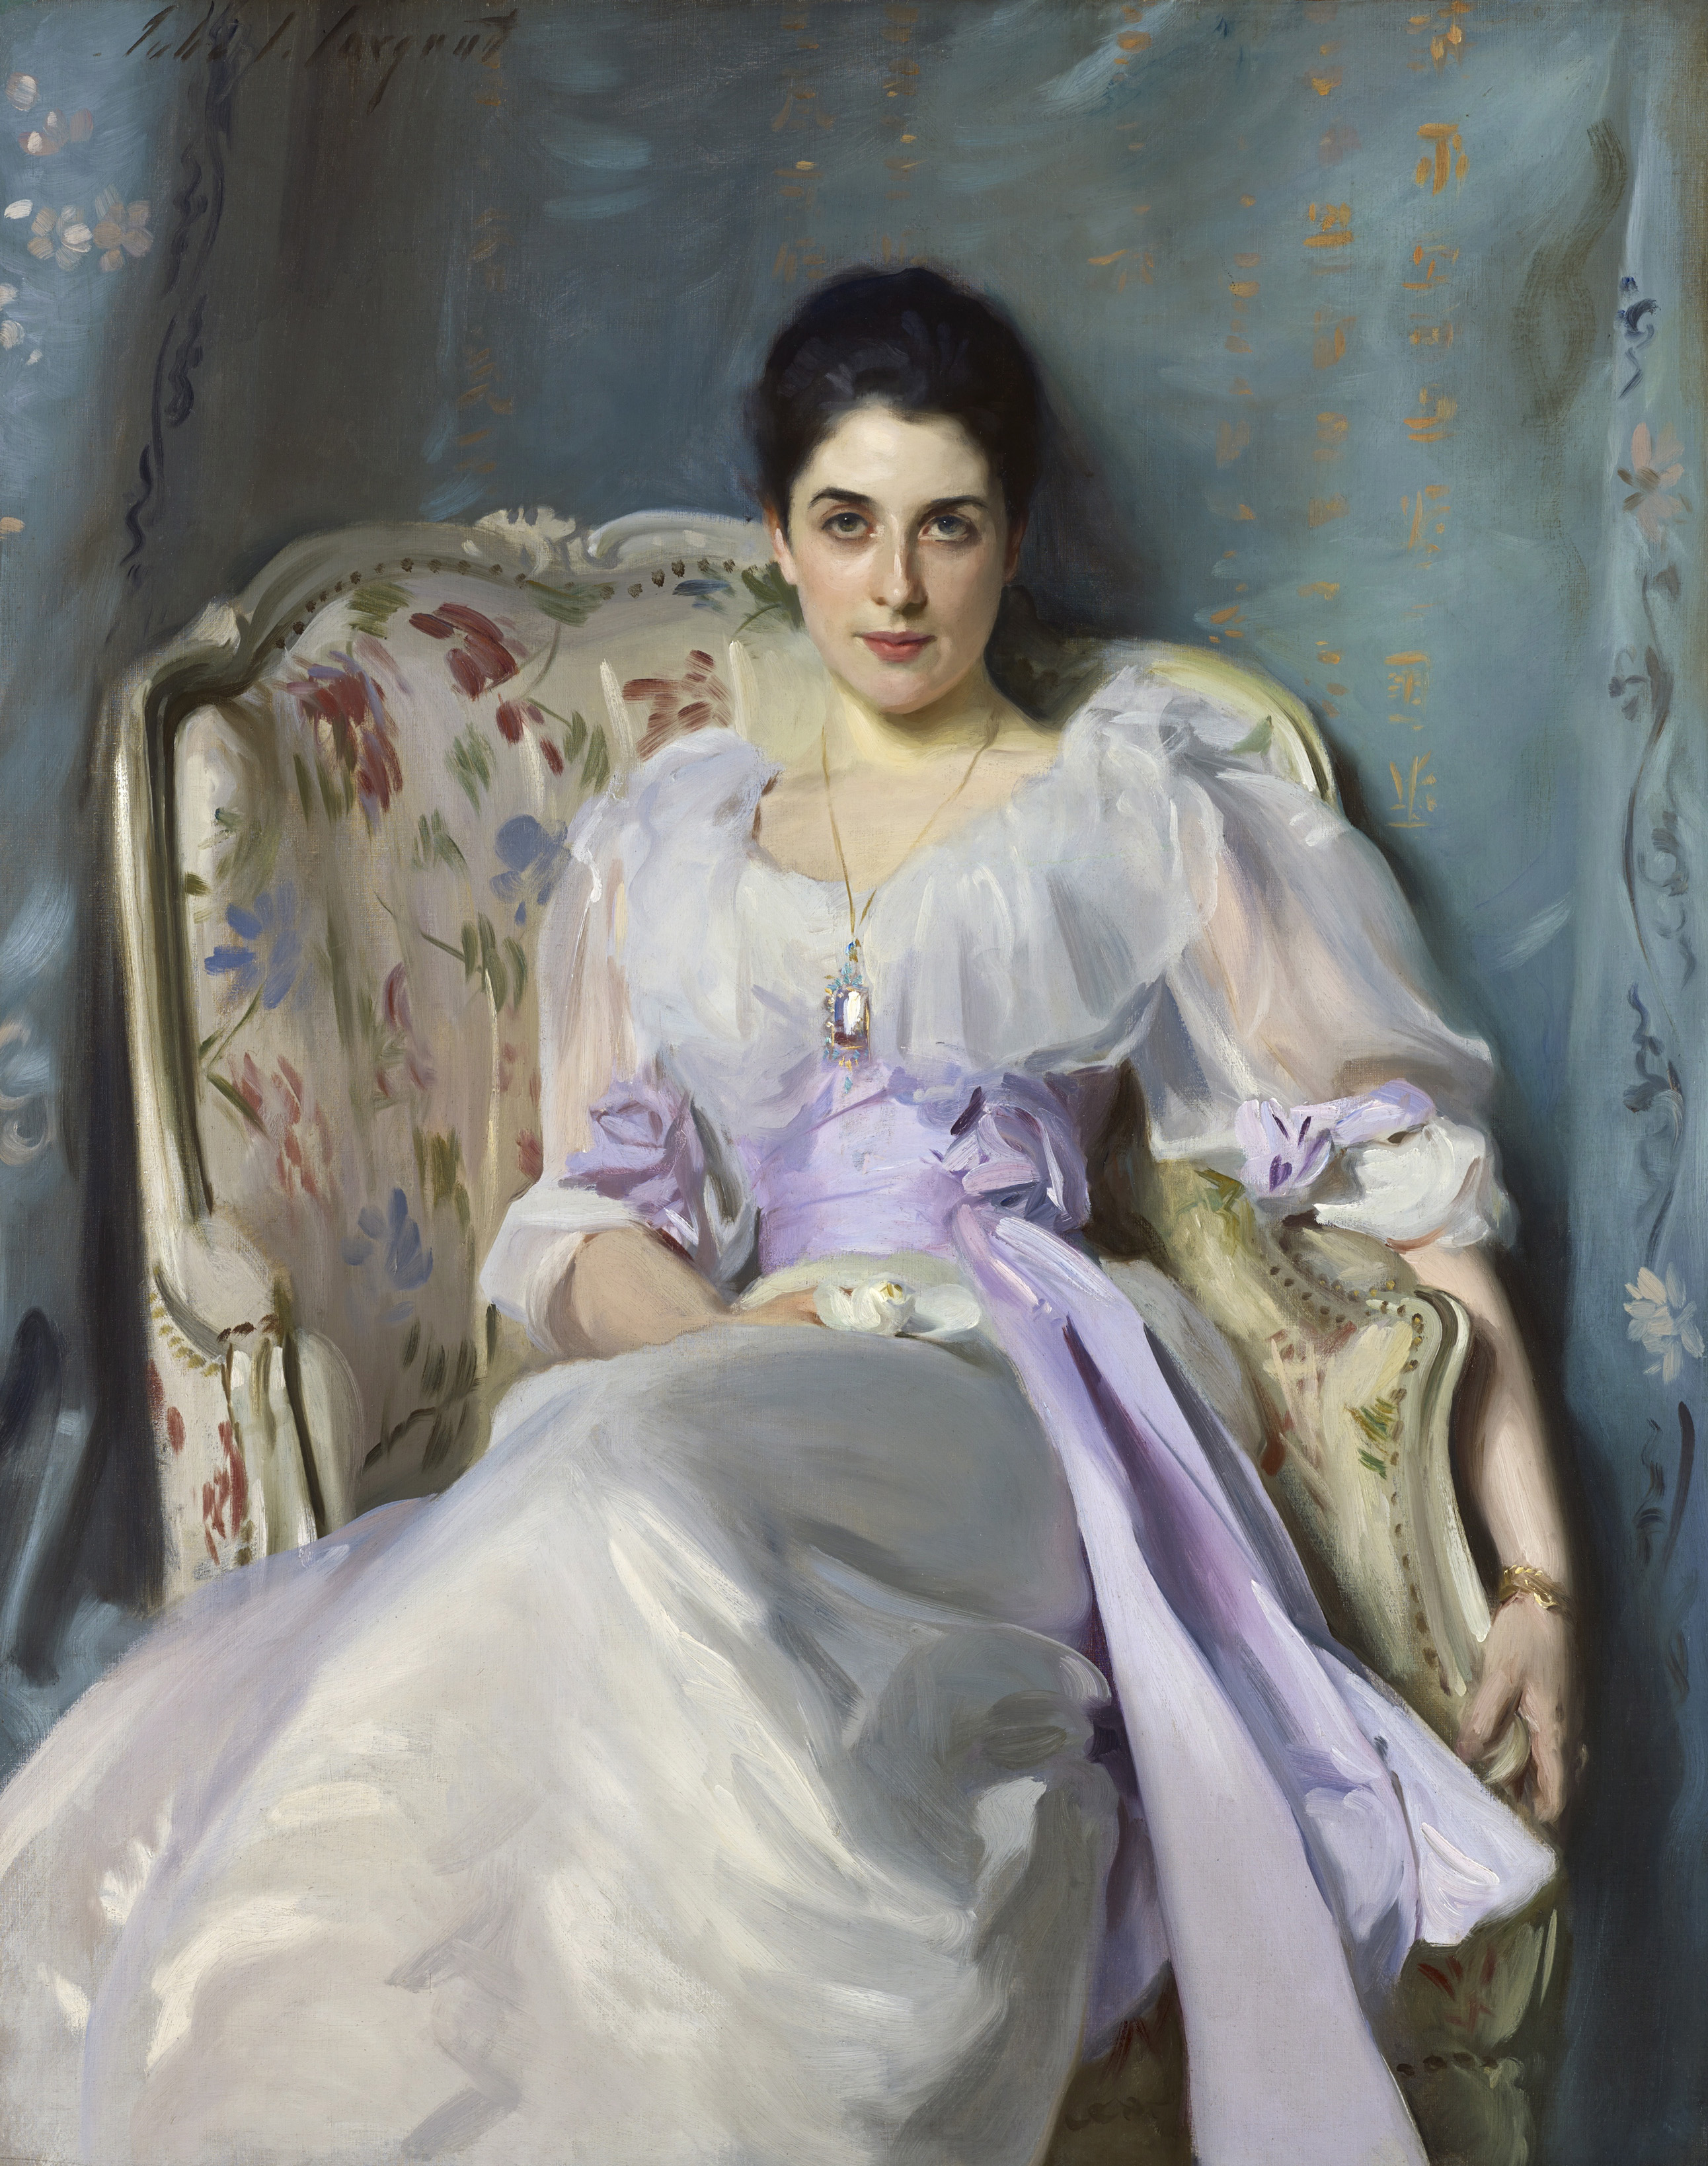 John Singer Sargent Lady Agnew of Lochnaw 1892 oil on canvas 125.7 x 100.3 cm Scottish National Gallery, Edinburgh © Trustees of the National Galleries of Scotland ***This image may only be used in conjunction with editorial coverage of The Greats exhibition, 24 Oct 2015 - 14 Feb 2016, at the Art Gallery of New South Wales. This image may not be cropped or overwritten. Prior approval in writing required for use as a cover. Caption details must accompany reproduction of the image. *** Media contact: Lisa.Catt@ag.nsw.gov.au *** Local Caption *** ***This image may only be used in conjunction with editorial coverage of The Greats exhibition, 24 Oct 2015 - 14 Feb 2016, at the Art Gallery of New South Wales. This image may not be cropped or overwritten. Prior approval in writing required for use as a cover. Caption details must accompany reproduction of the image. *** Media contact: Lisa.Catt@ag.nsw.gov.au